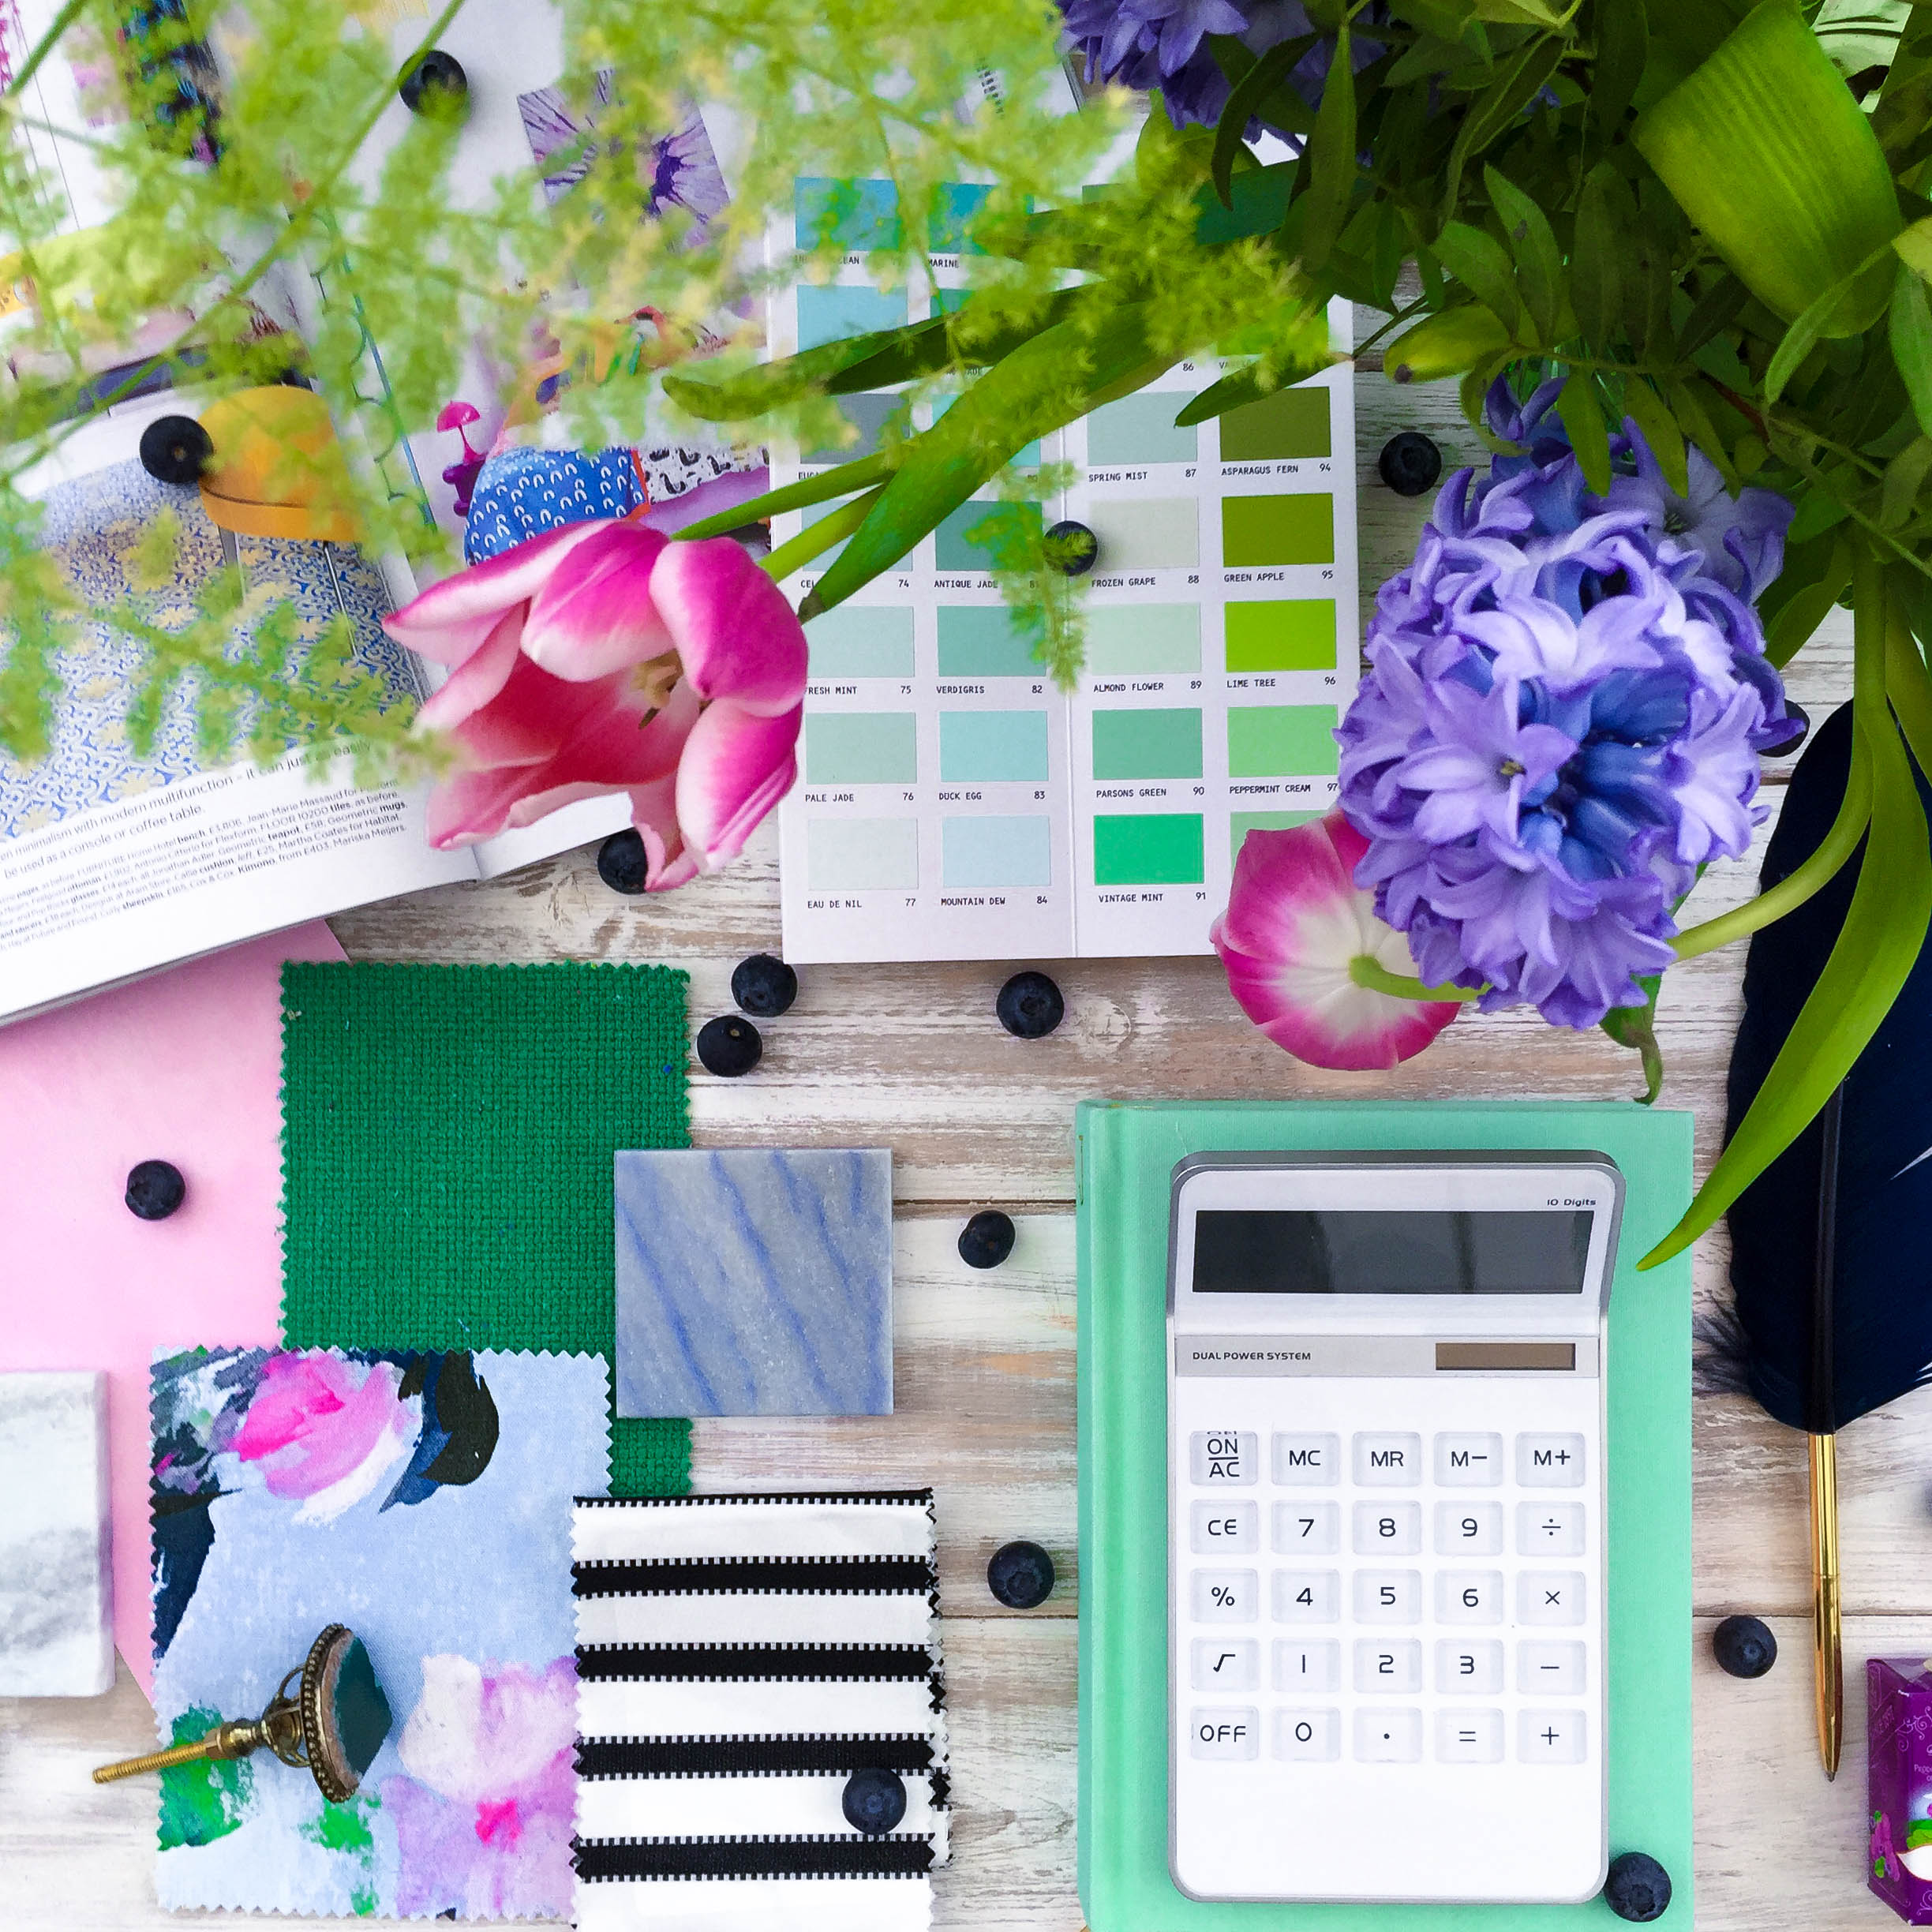 Decorating on a low budget? Get my tips on how to make the most of your budget and achieve the decor you thought you couldn't afford!